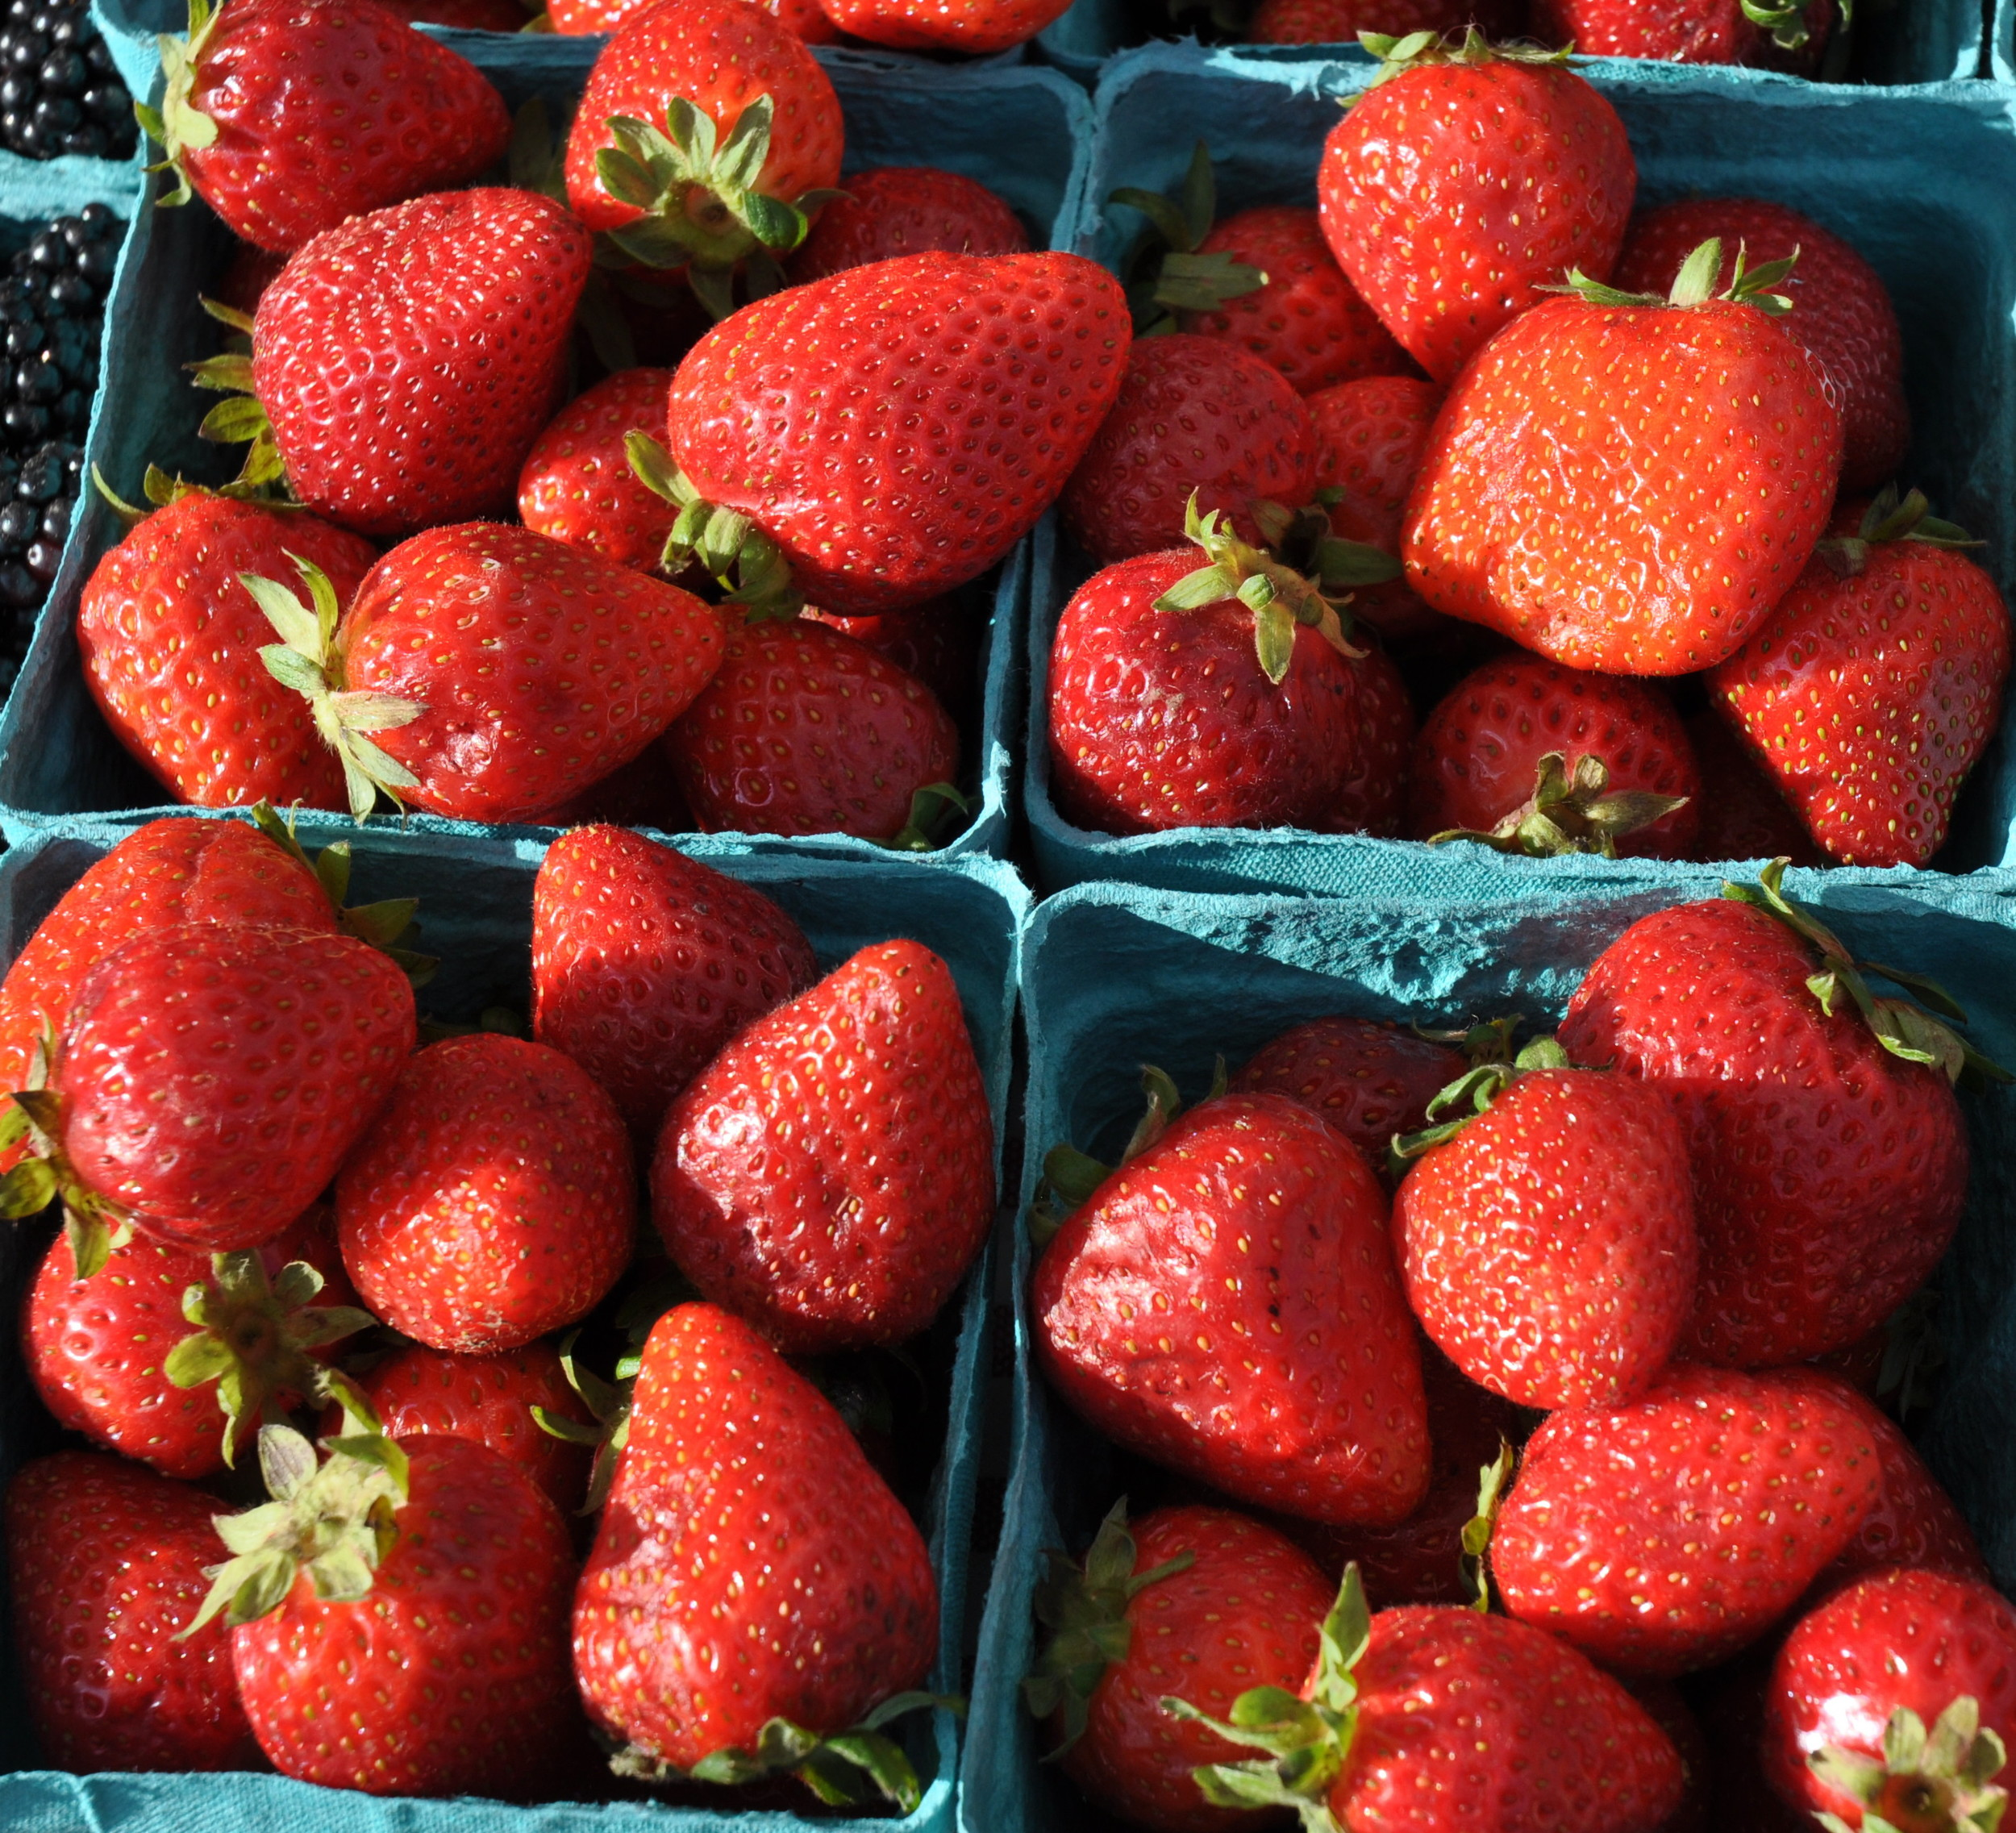 Everbearing strawberries from Sidhu Farms at Wallingford Farmers Market. Copyright Zachary D. Lyons.